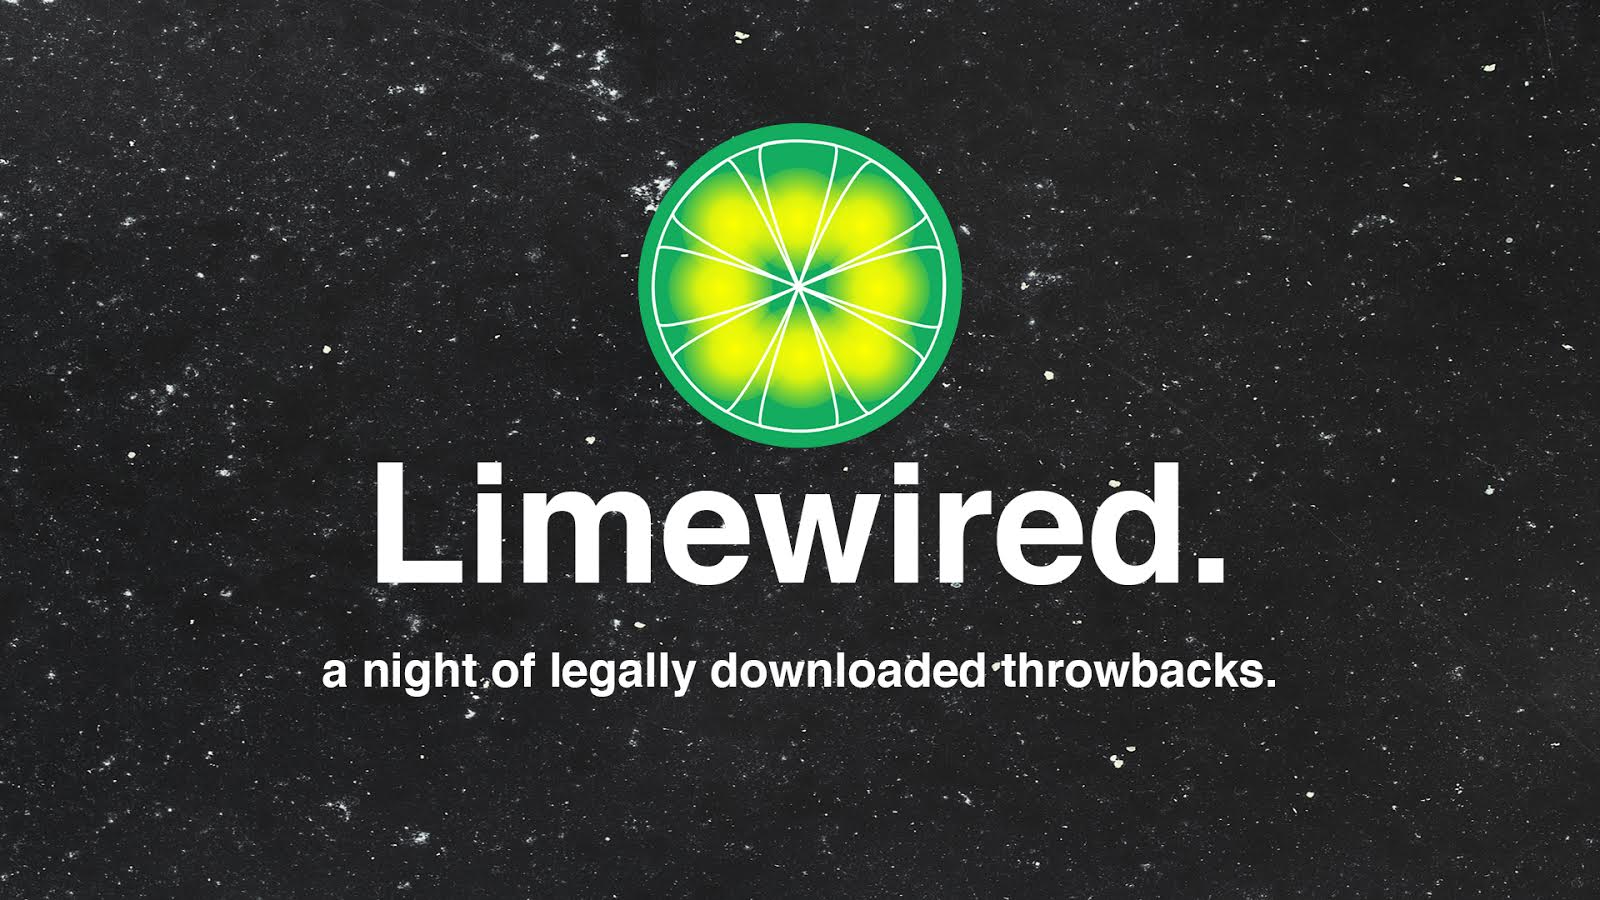 Limewired | The Bluff